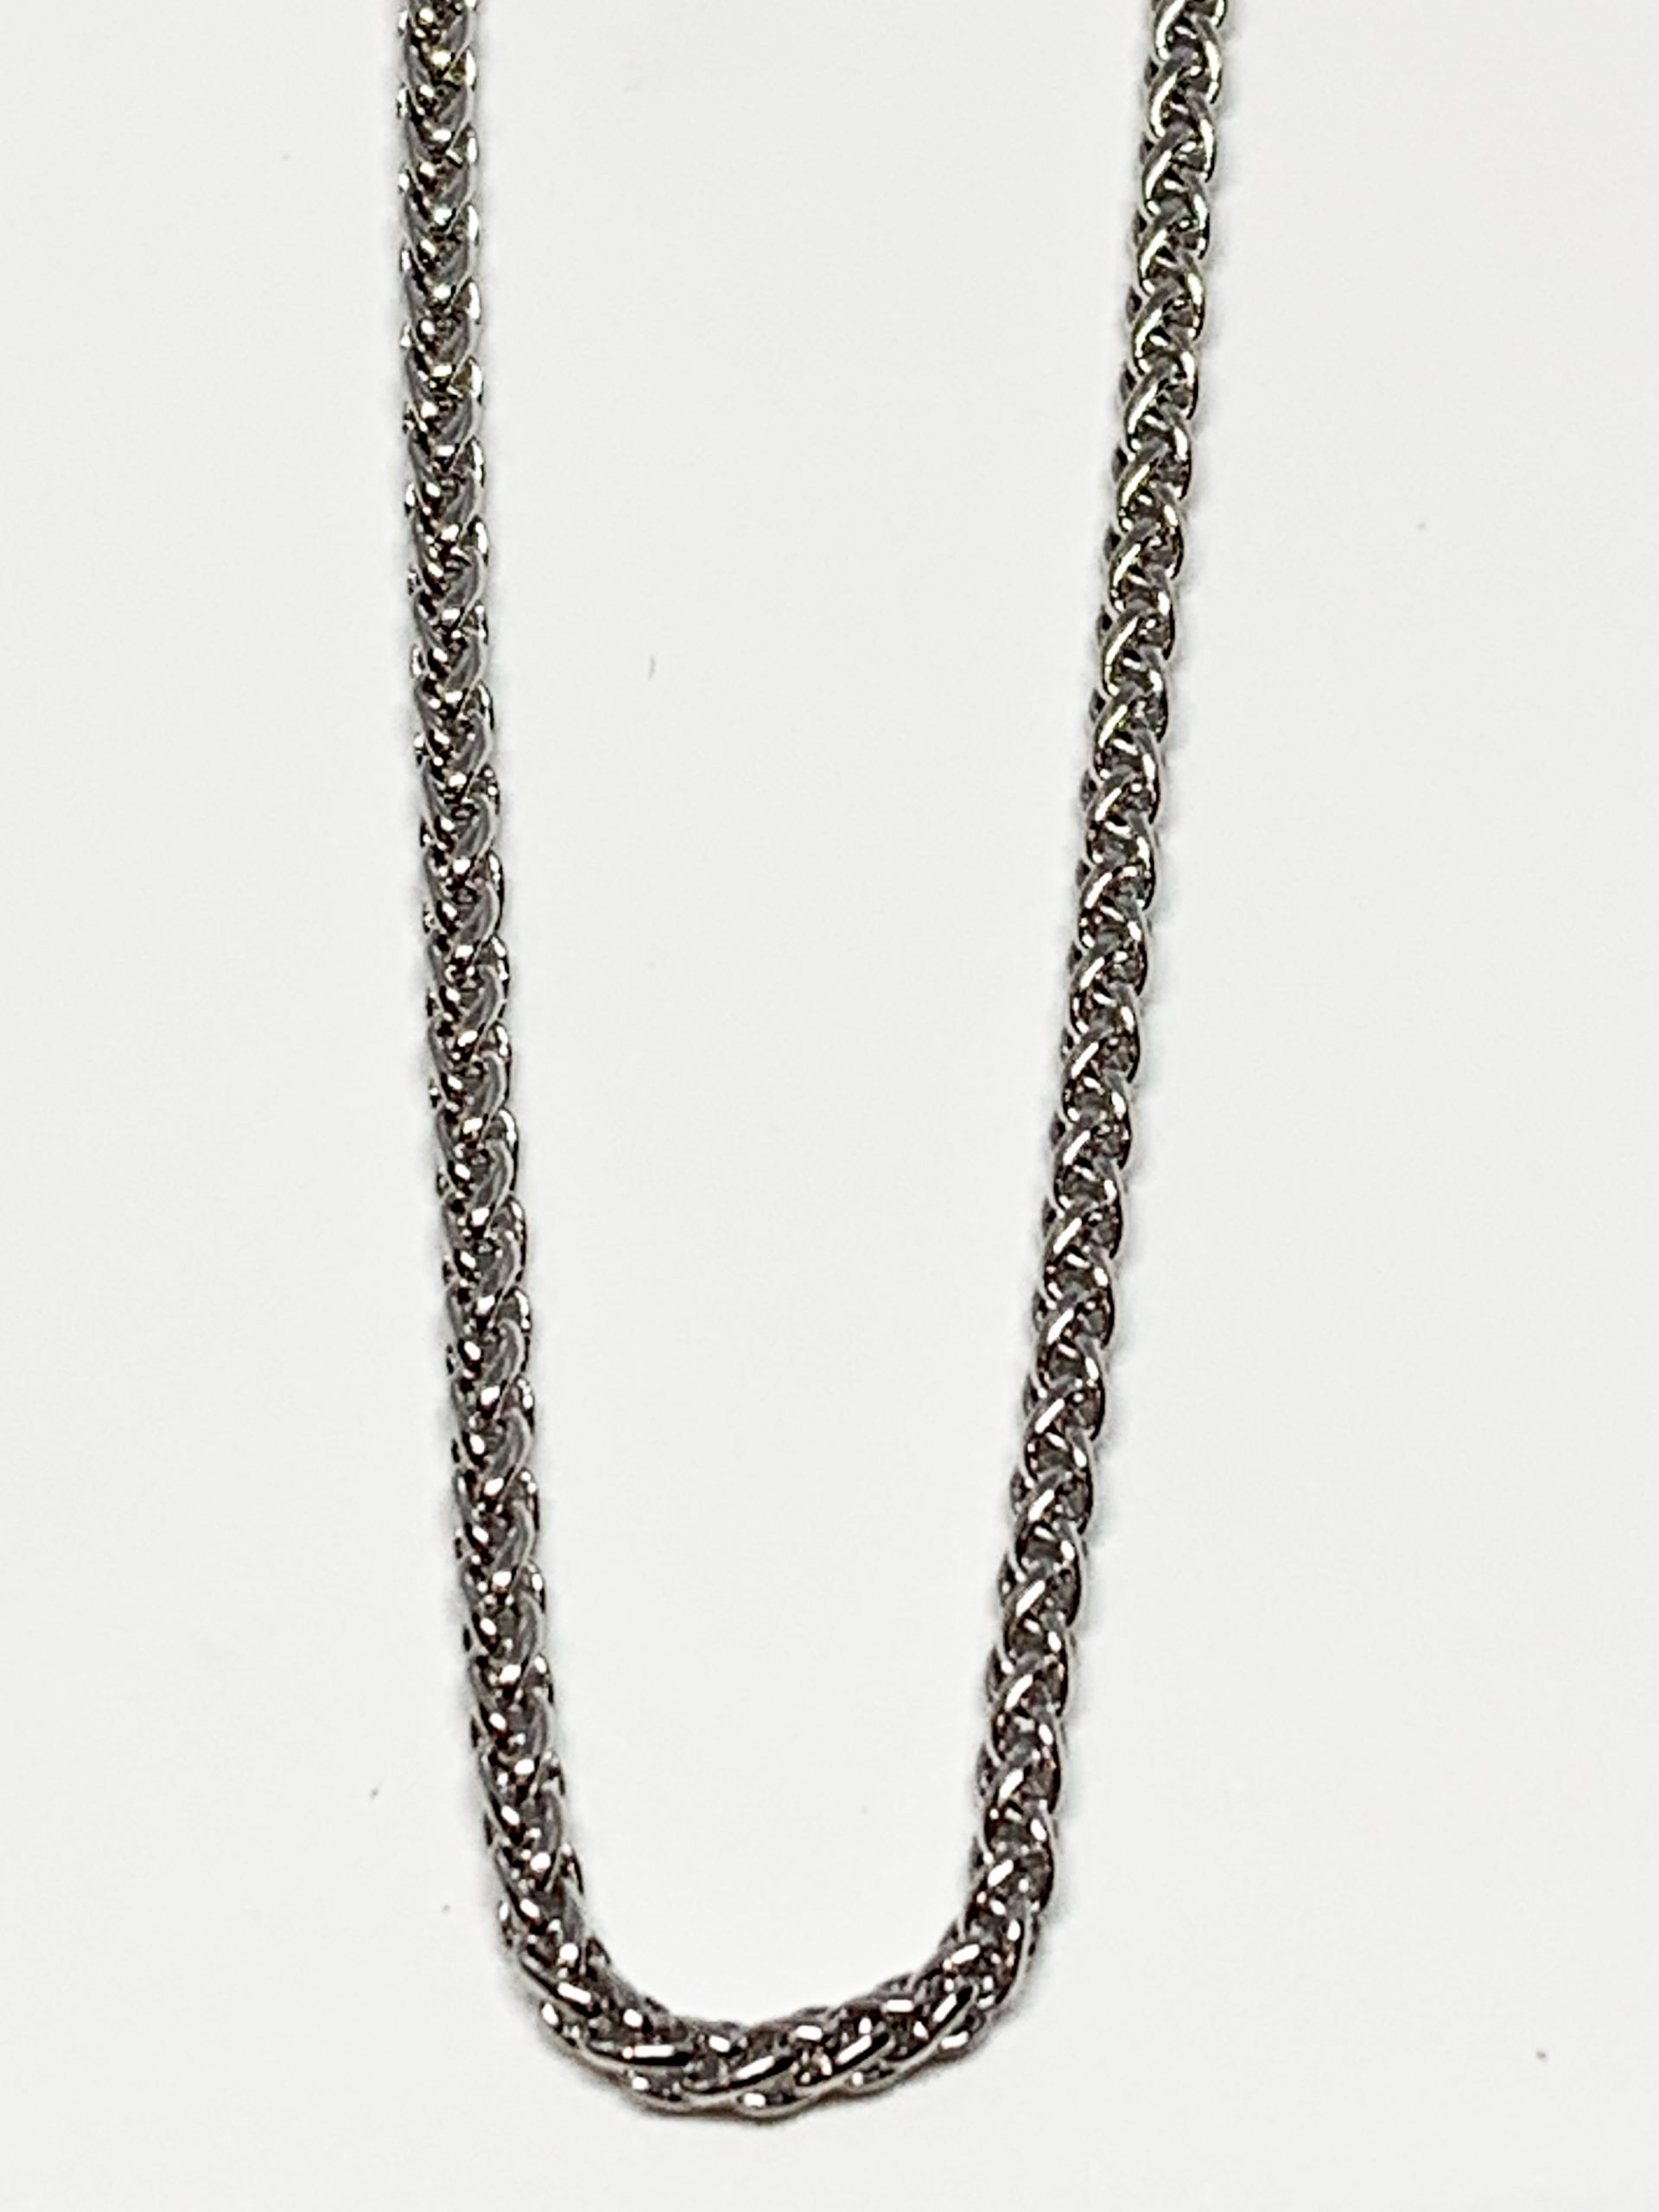 Braided sterling silver chain by Karyn Chopik | Effusion Art Gallery + Cast Glass Studio, Invermere BC